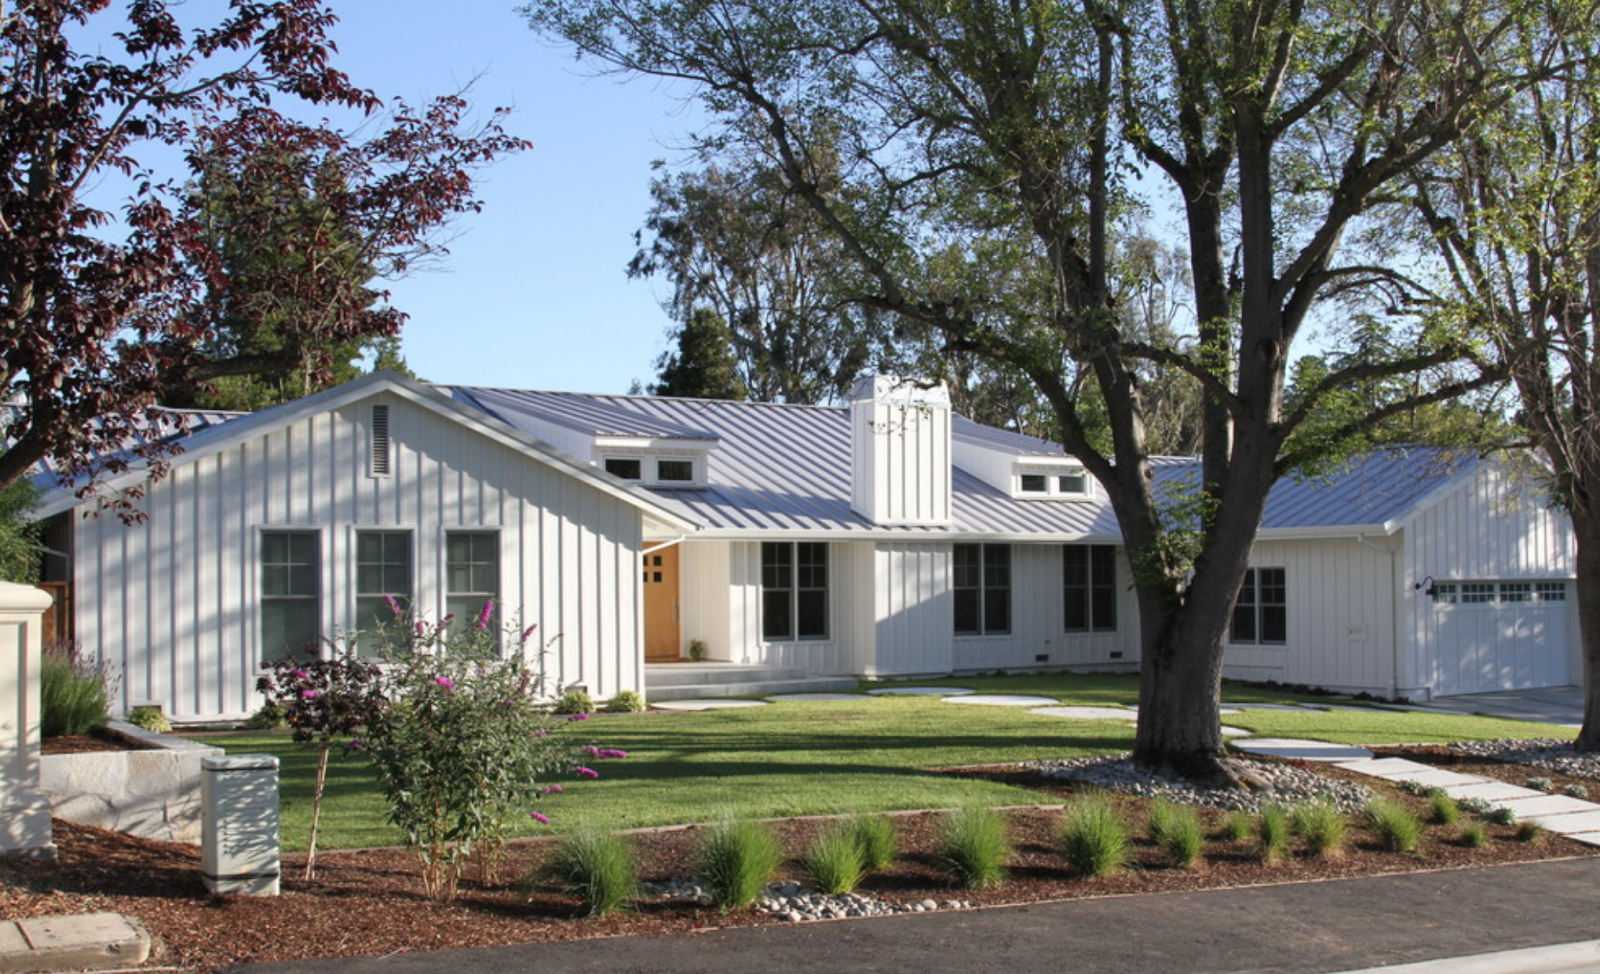 This is a remodel that included a 2nd story addition for Ranch style metal homes